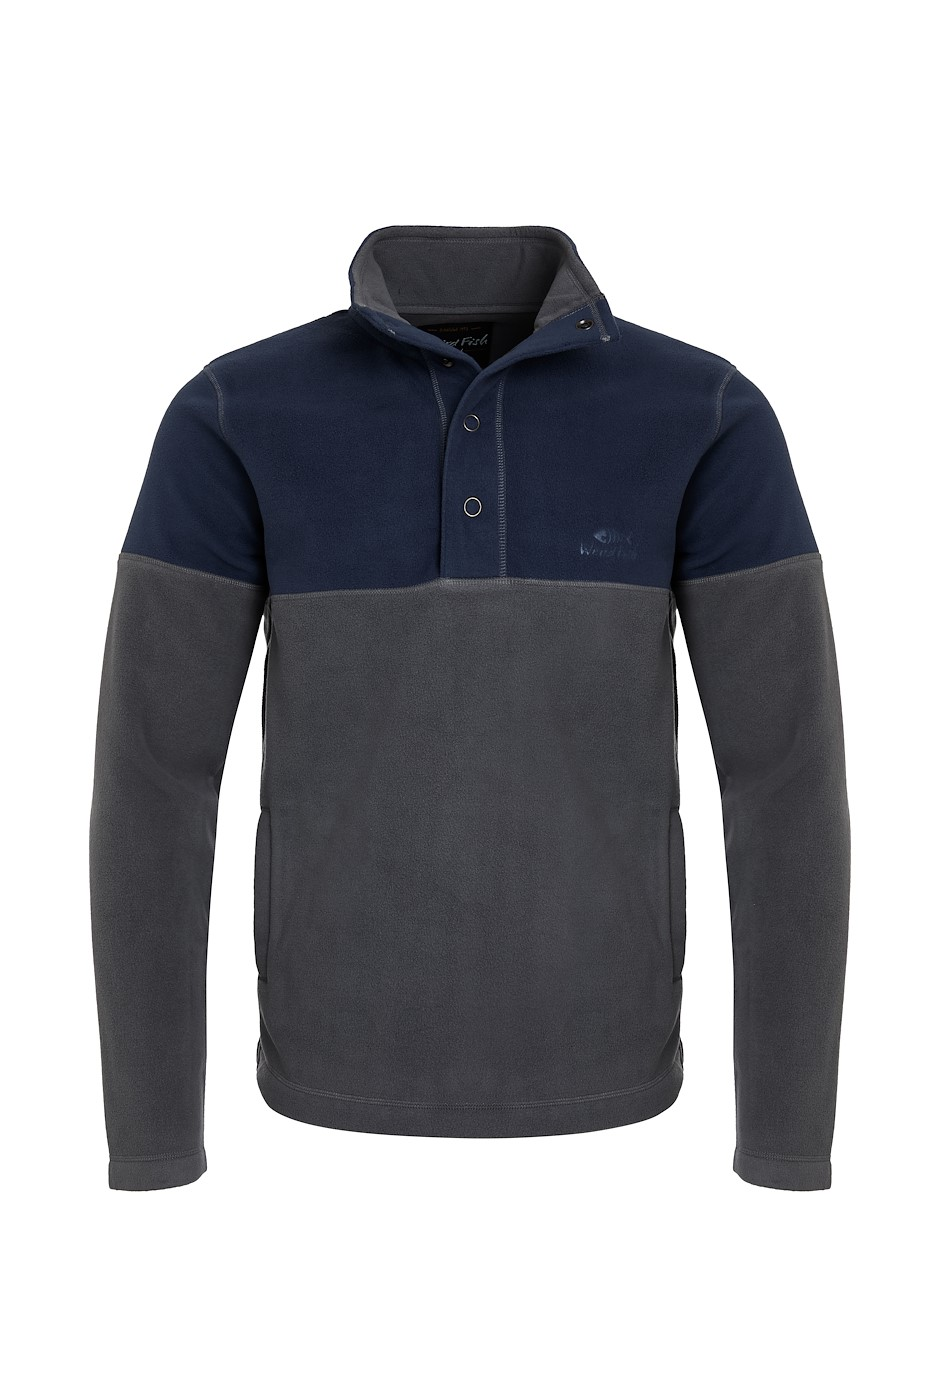 Denzel Recycled Embossed Microfleece Cement